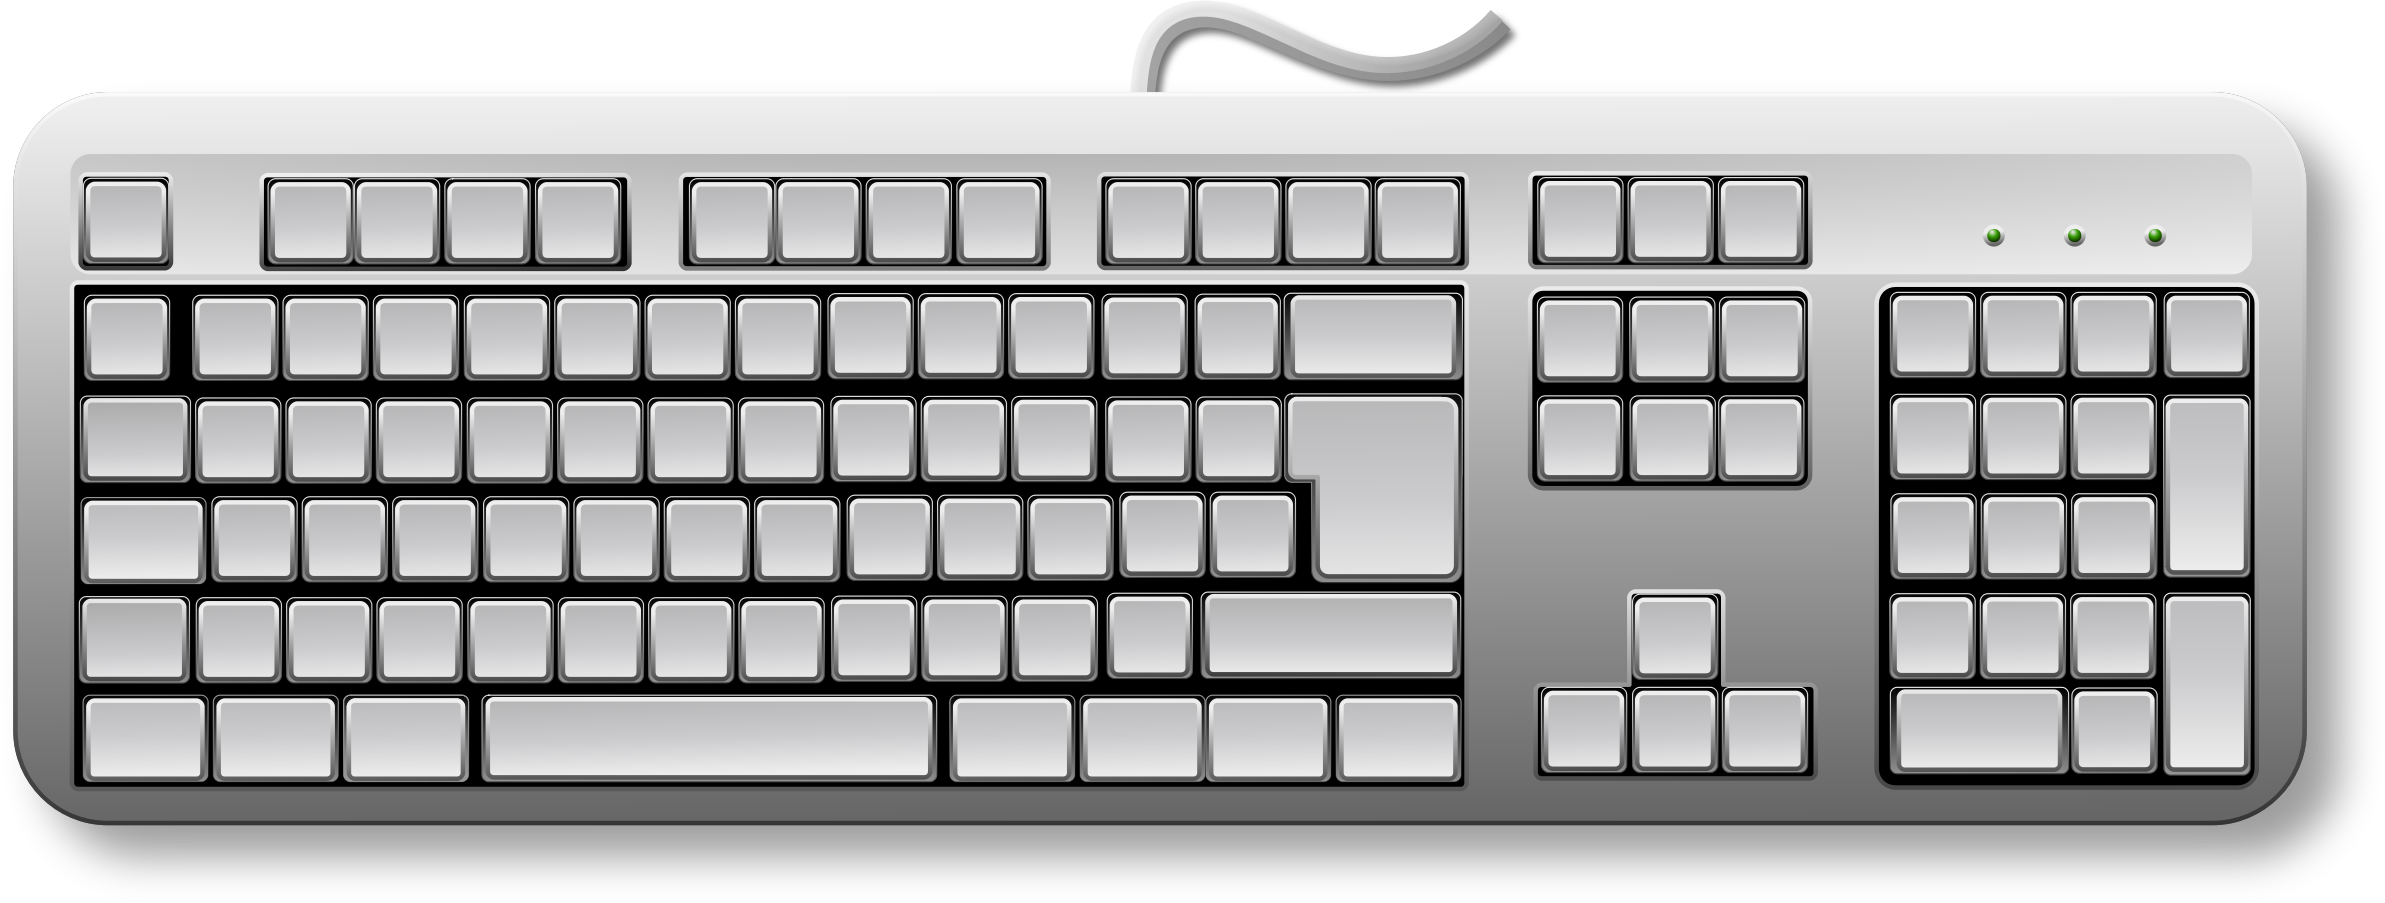 collection of blank. Keyboard clipart print